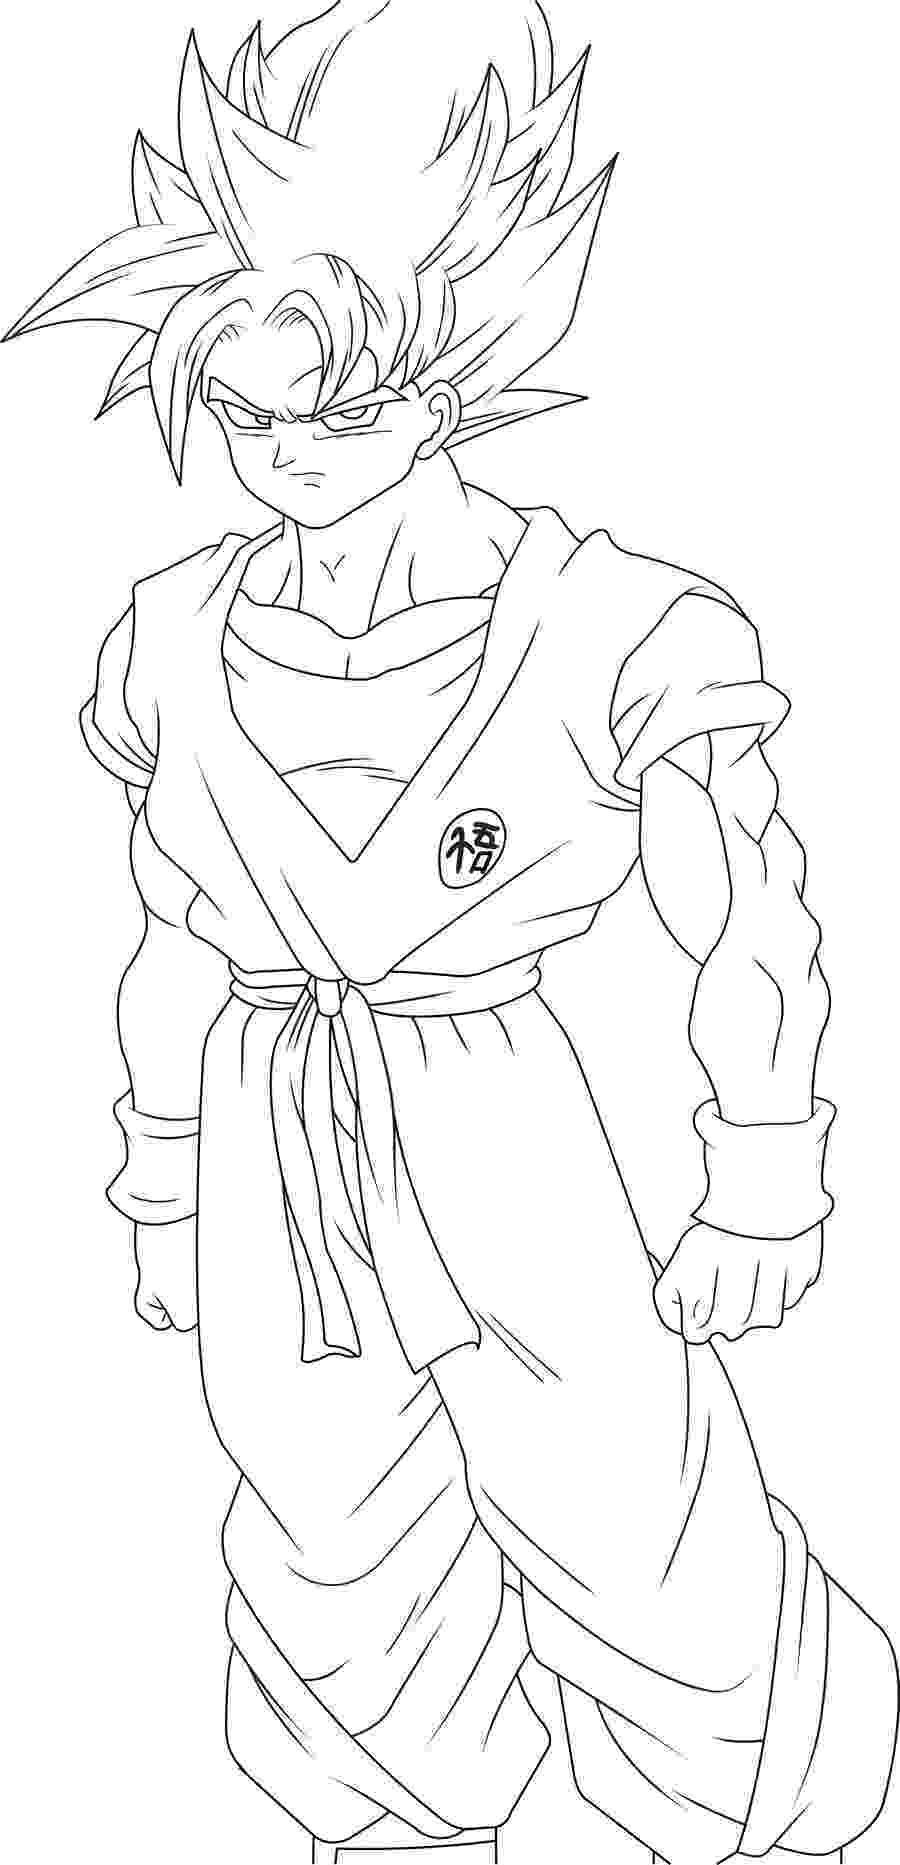 goku coloring page goku coloring pages to download and print for free page coloring goku